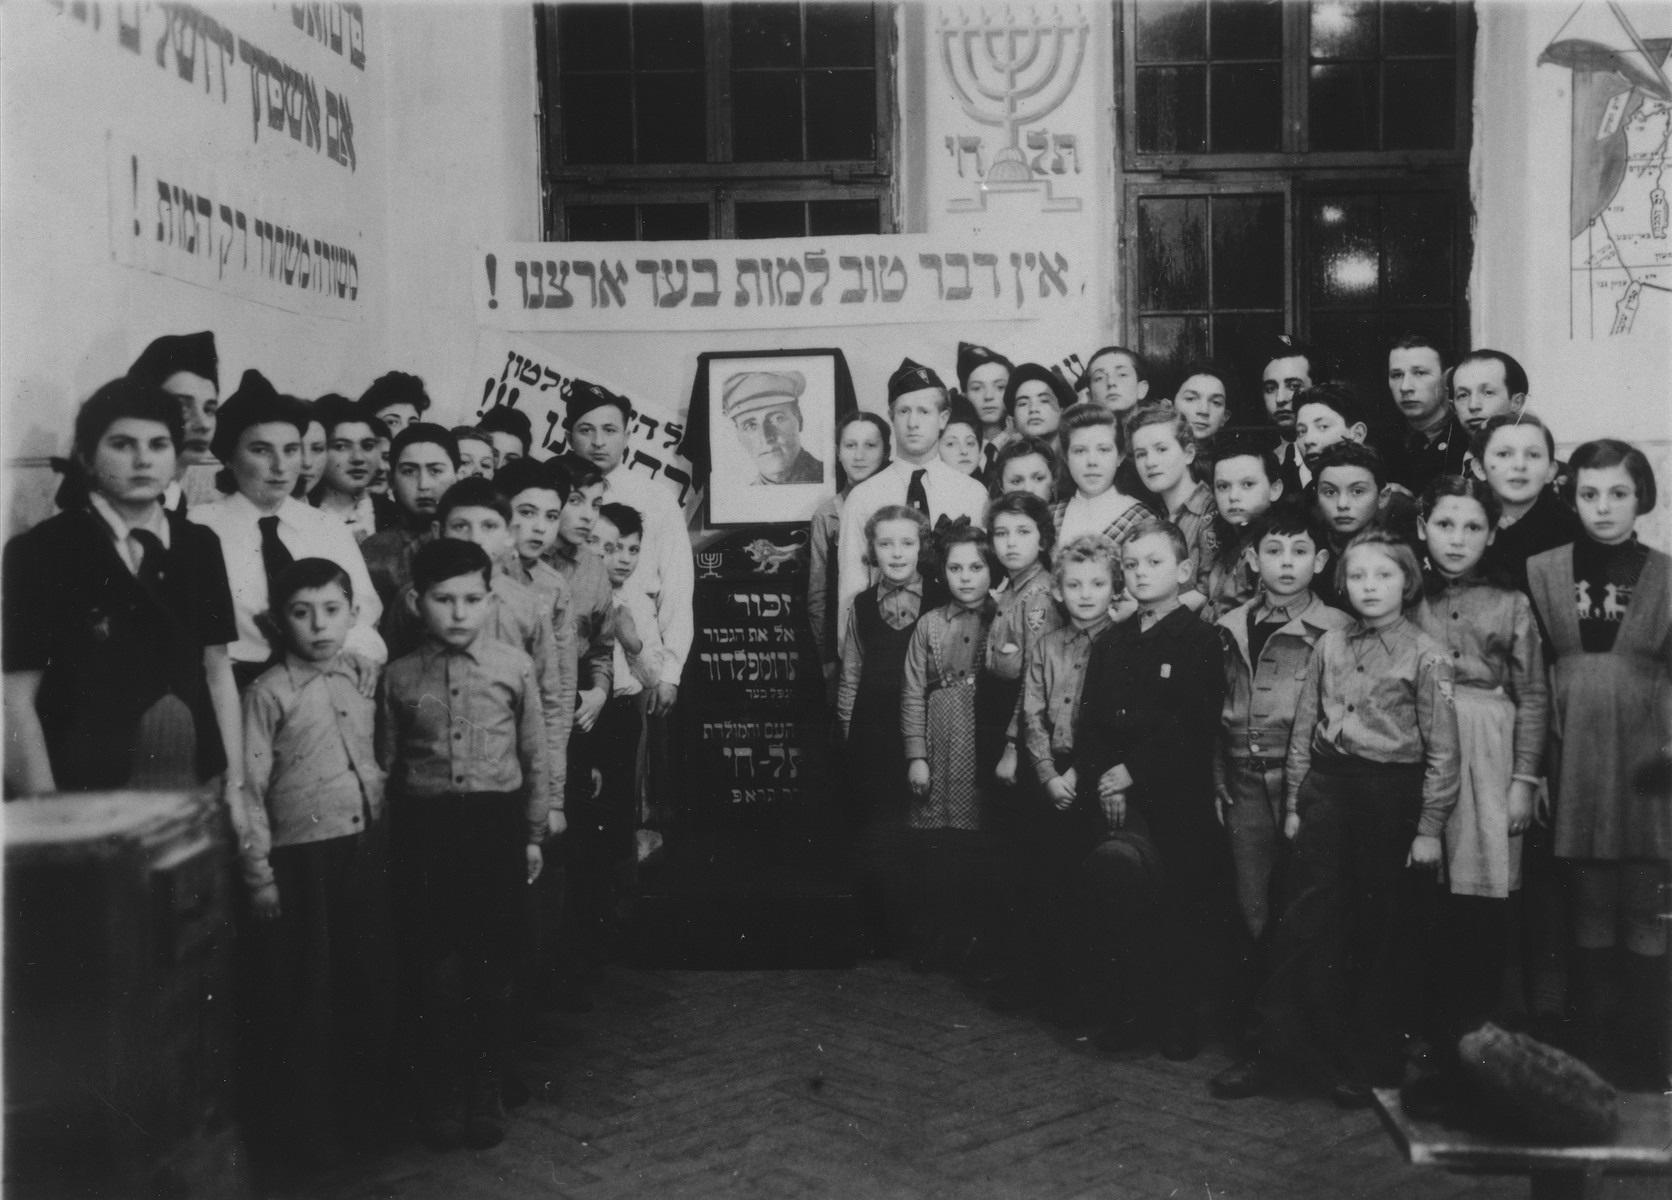 """Members of the Betar revisionist Zionist youth movement pose alongside a memorial display featuring a portrait of Joseph Trumpeldor and a Hebrew plaque that reads, """"There is nothing better than to die for our land"""".  Among those pictured are Ida Wulach, Surele Greenblat and Lila Rajs."""